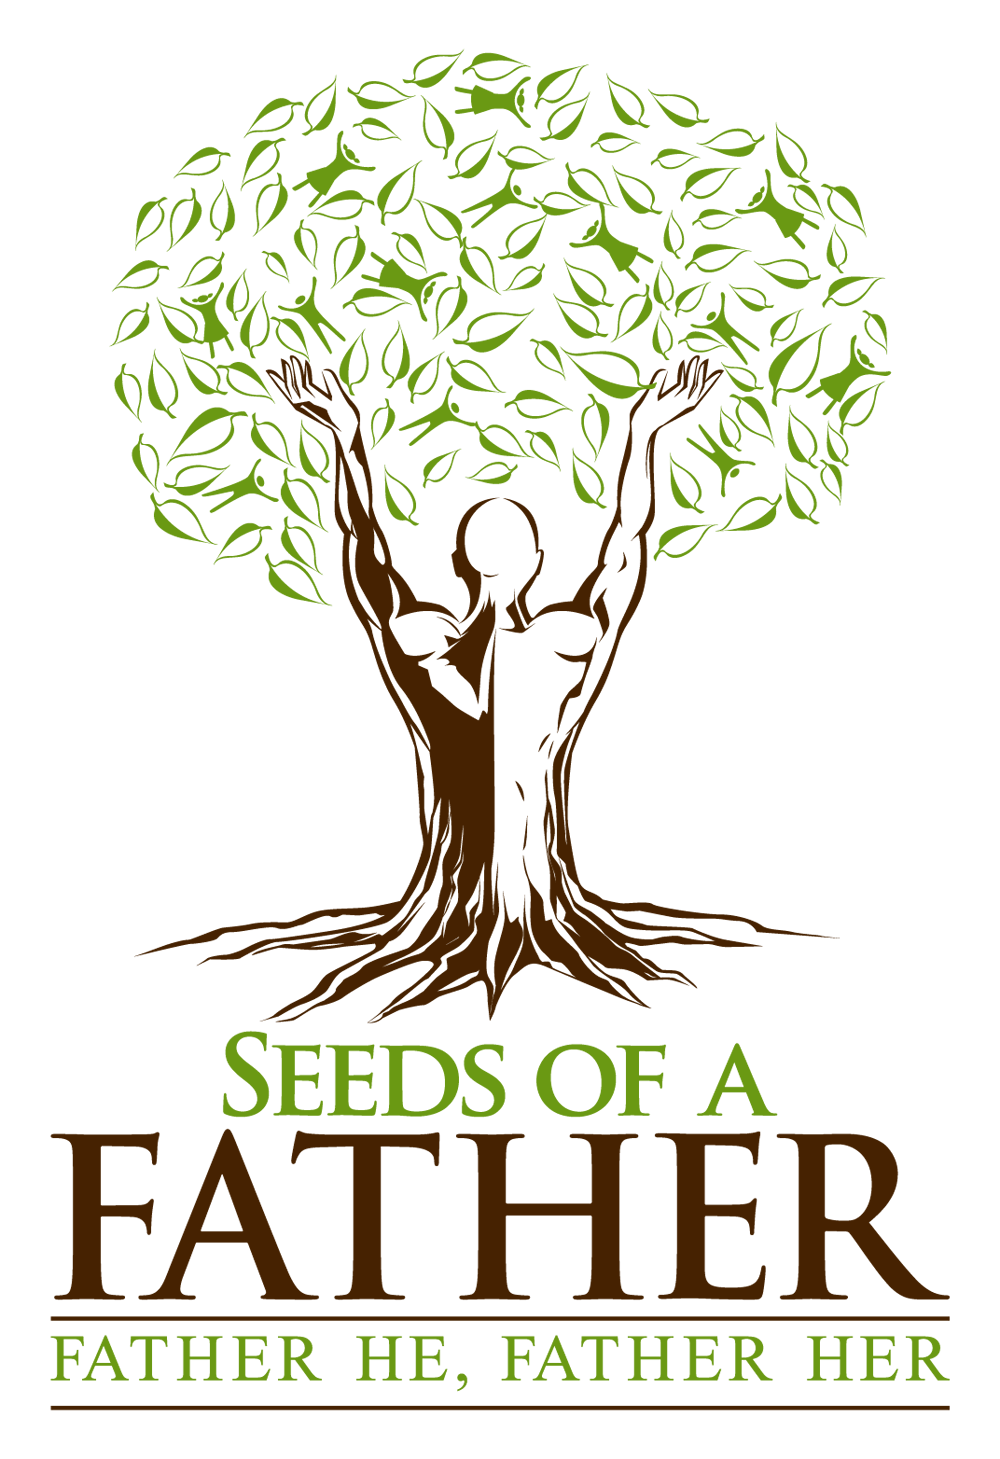 Powerful church logo representing a growing tree with a